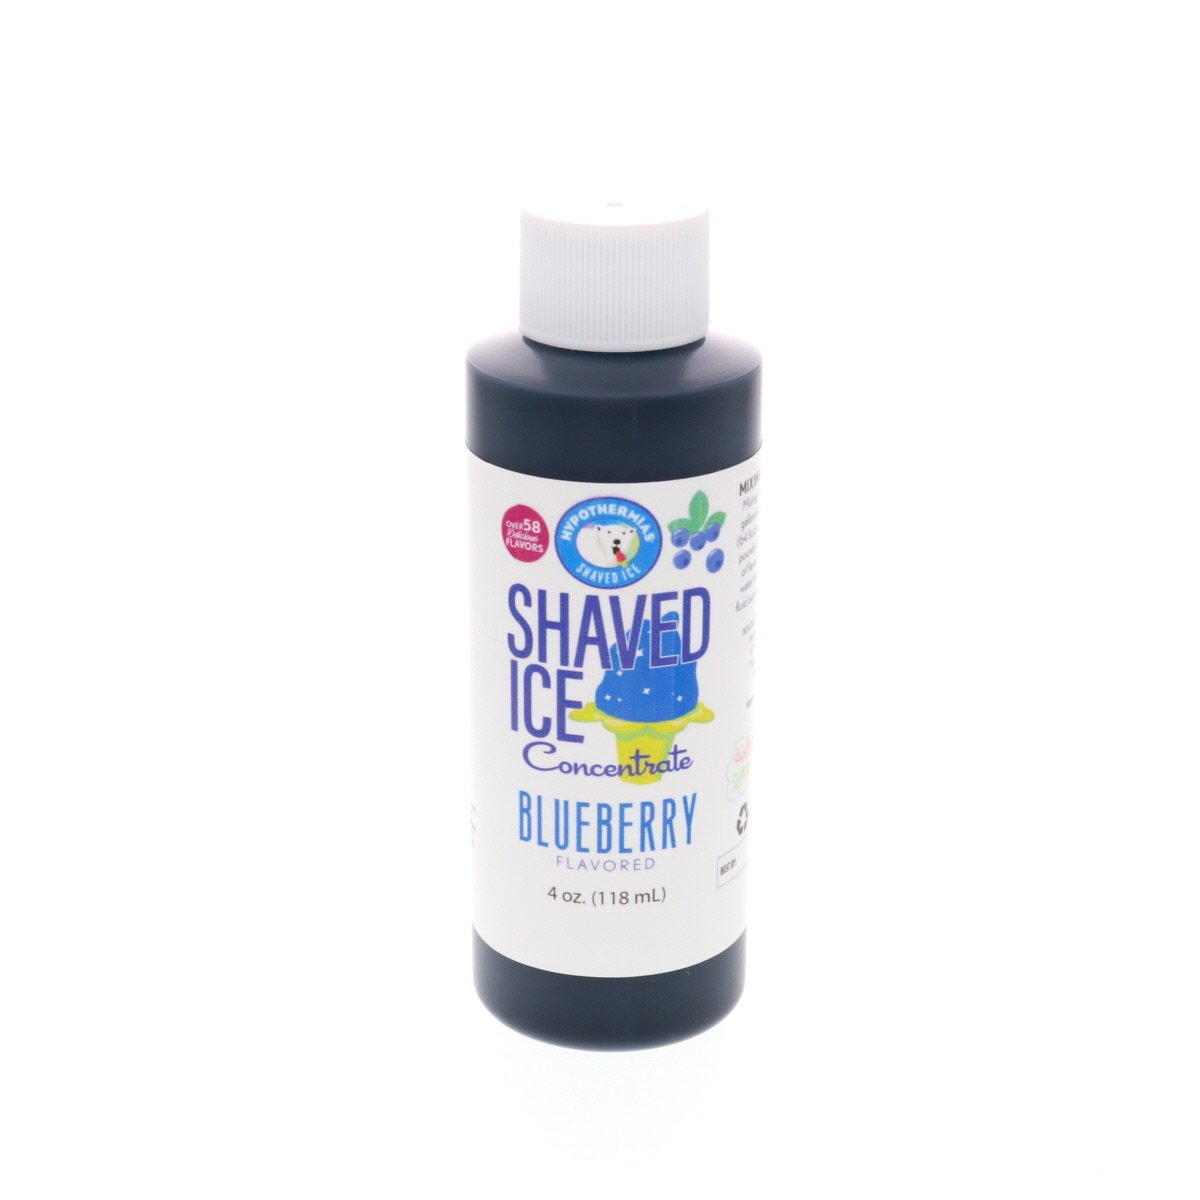 Blueberry Hawaiian Shave Ice syrup flavor concentrate 4 Fl Oz